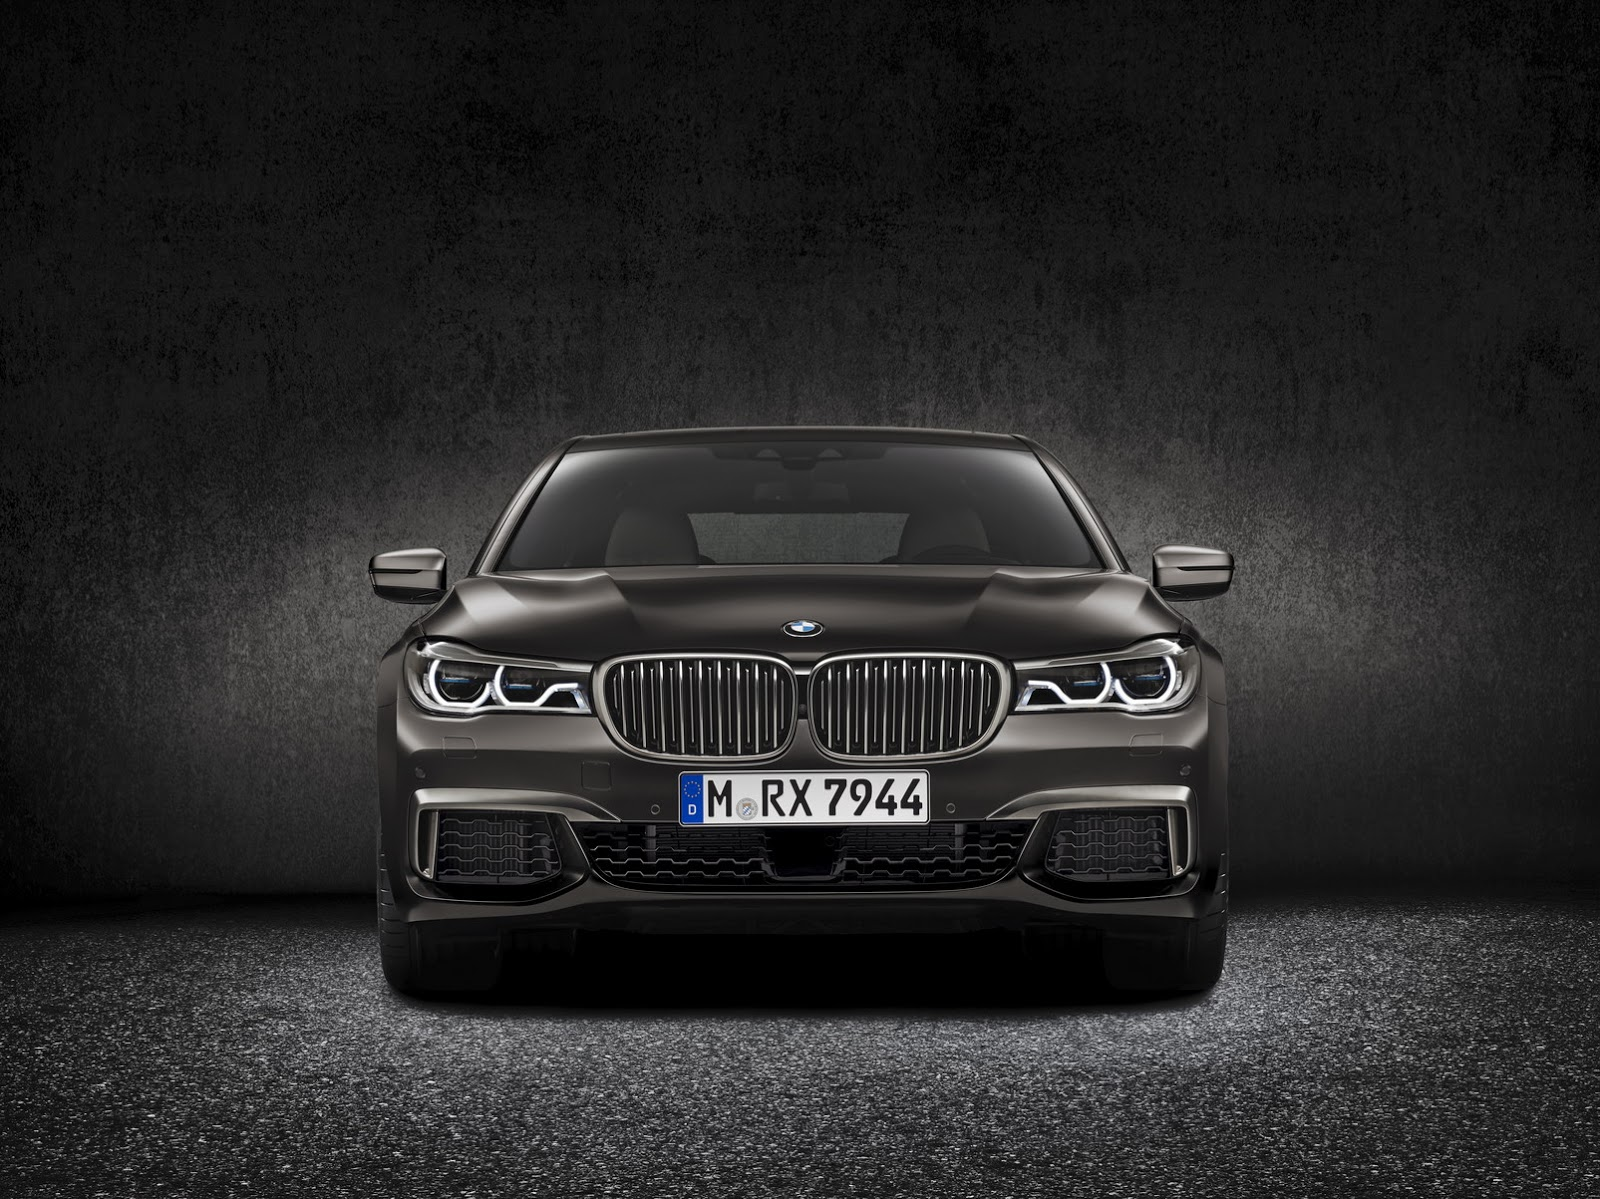 New Bmw M760li Xdrive Gets Massive 6 6 Liter V12 Turbo